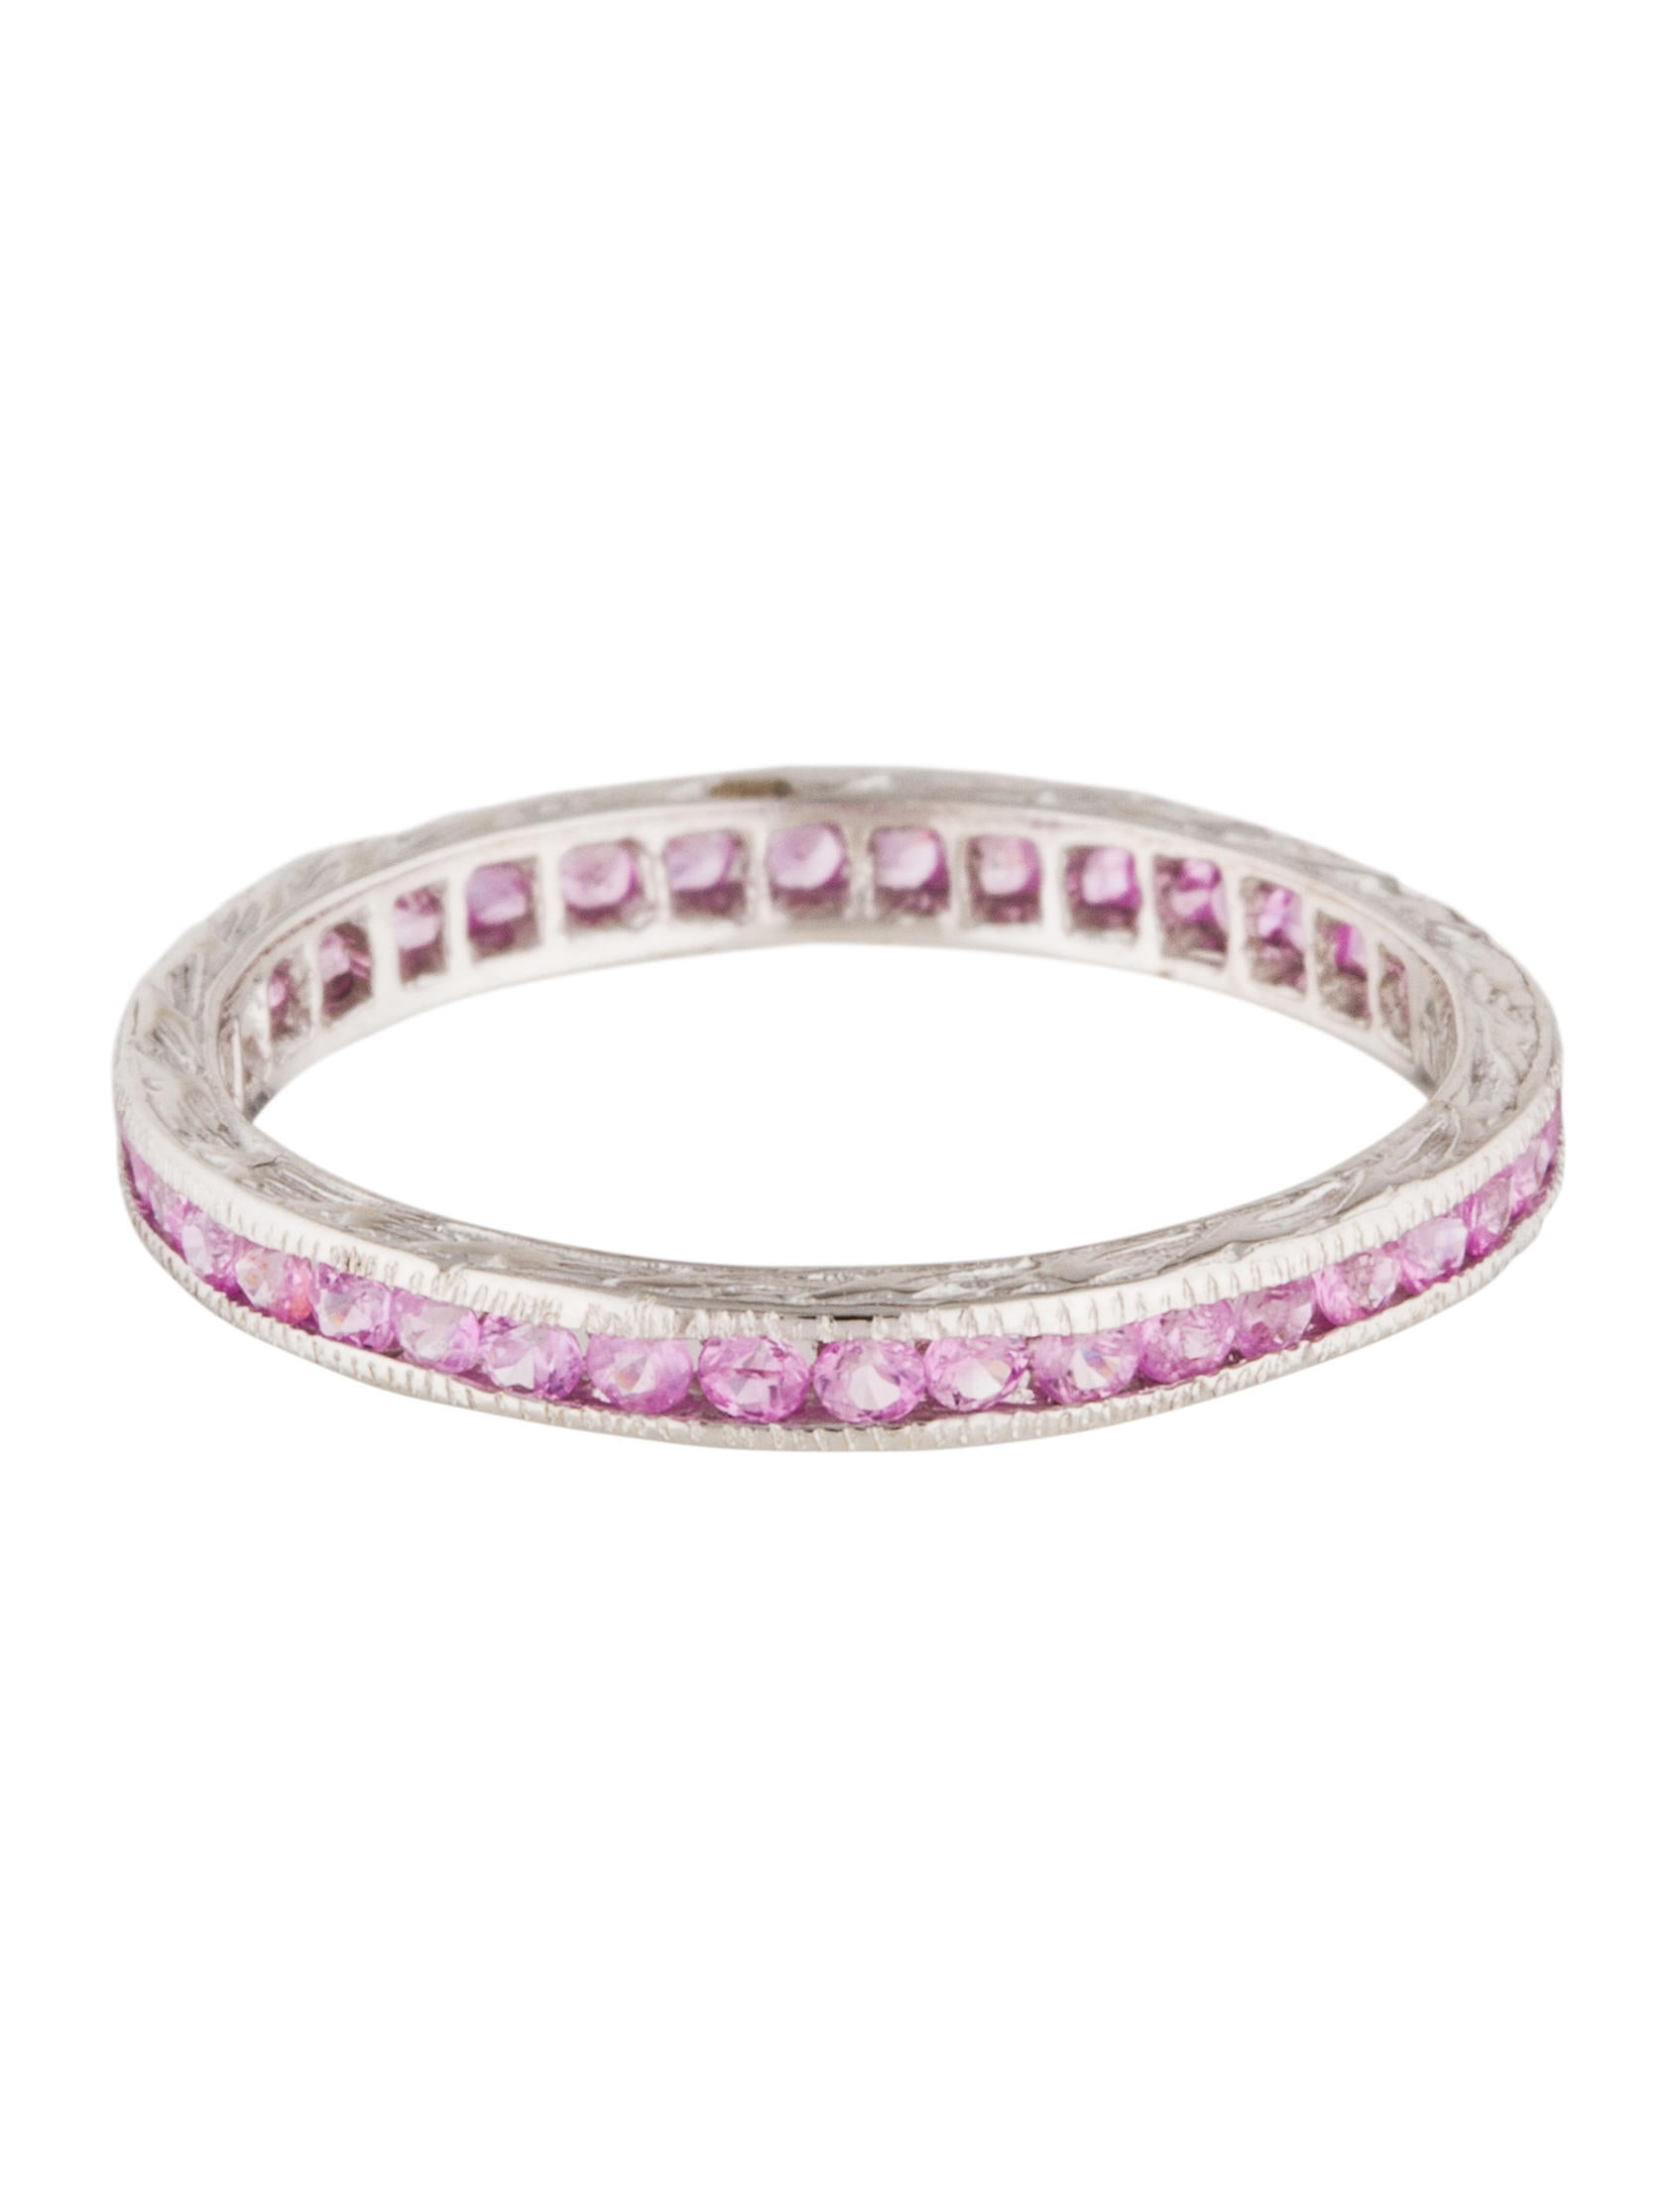 18k Pink Sapphire Eternity Band Rings Rring37186 The